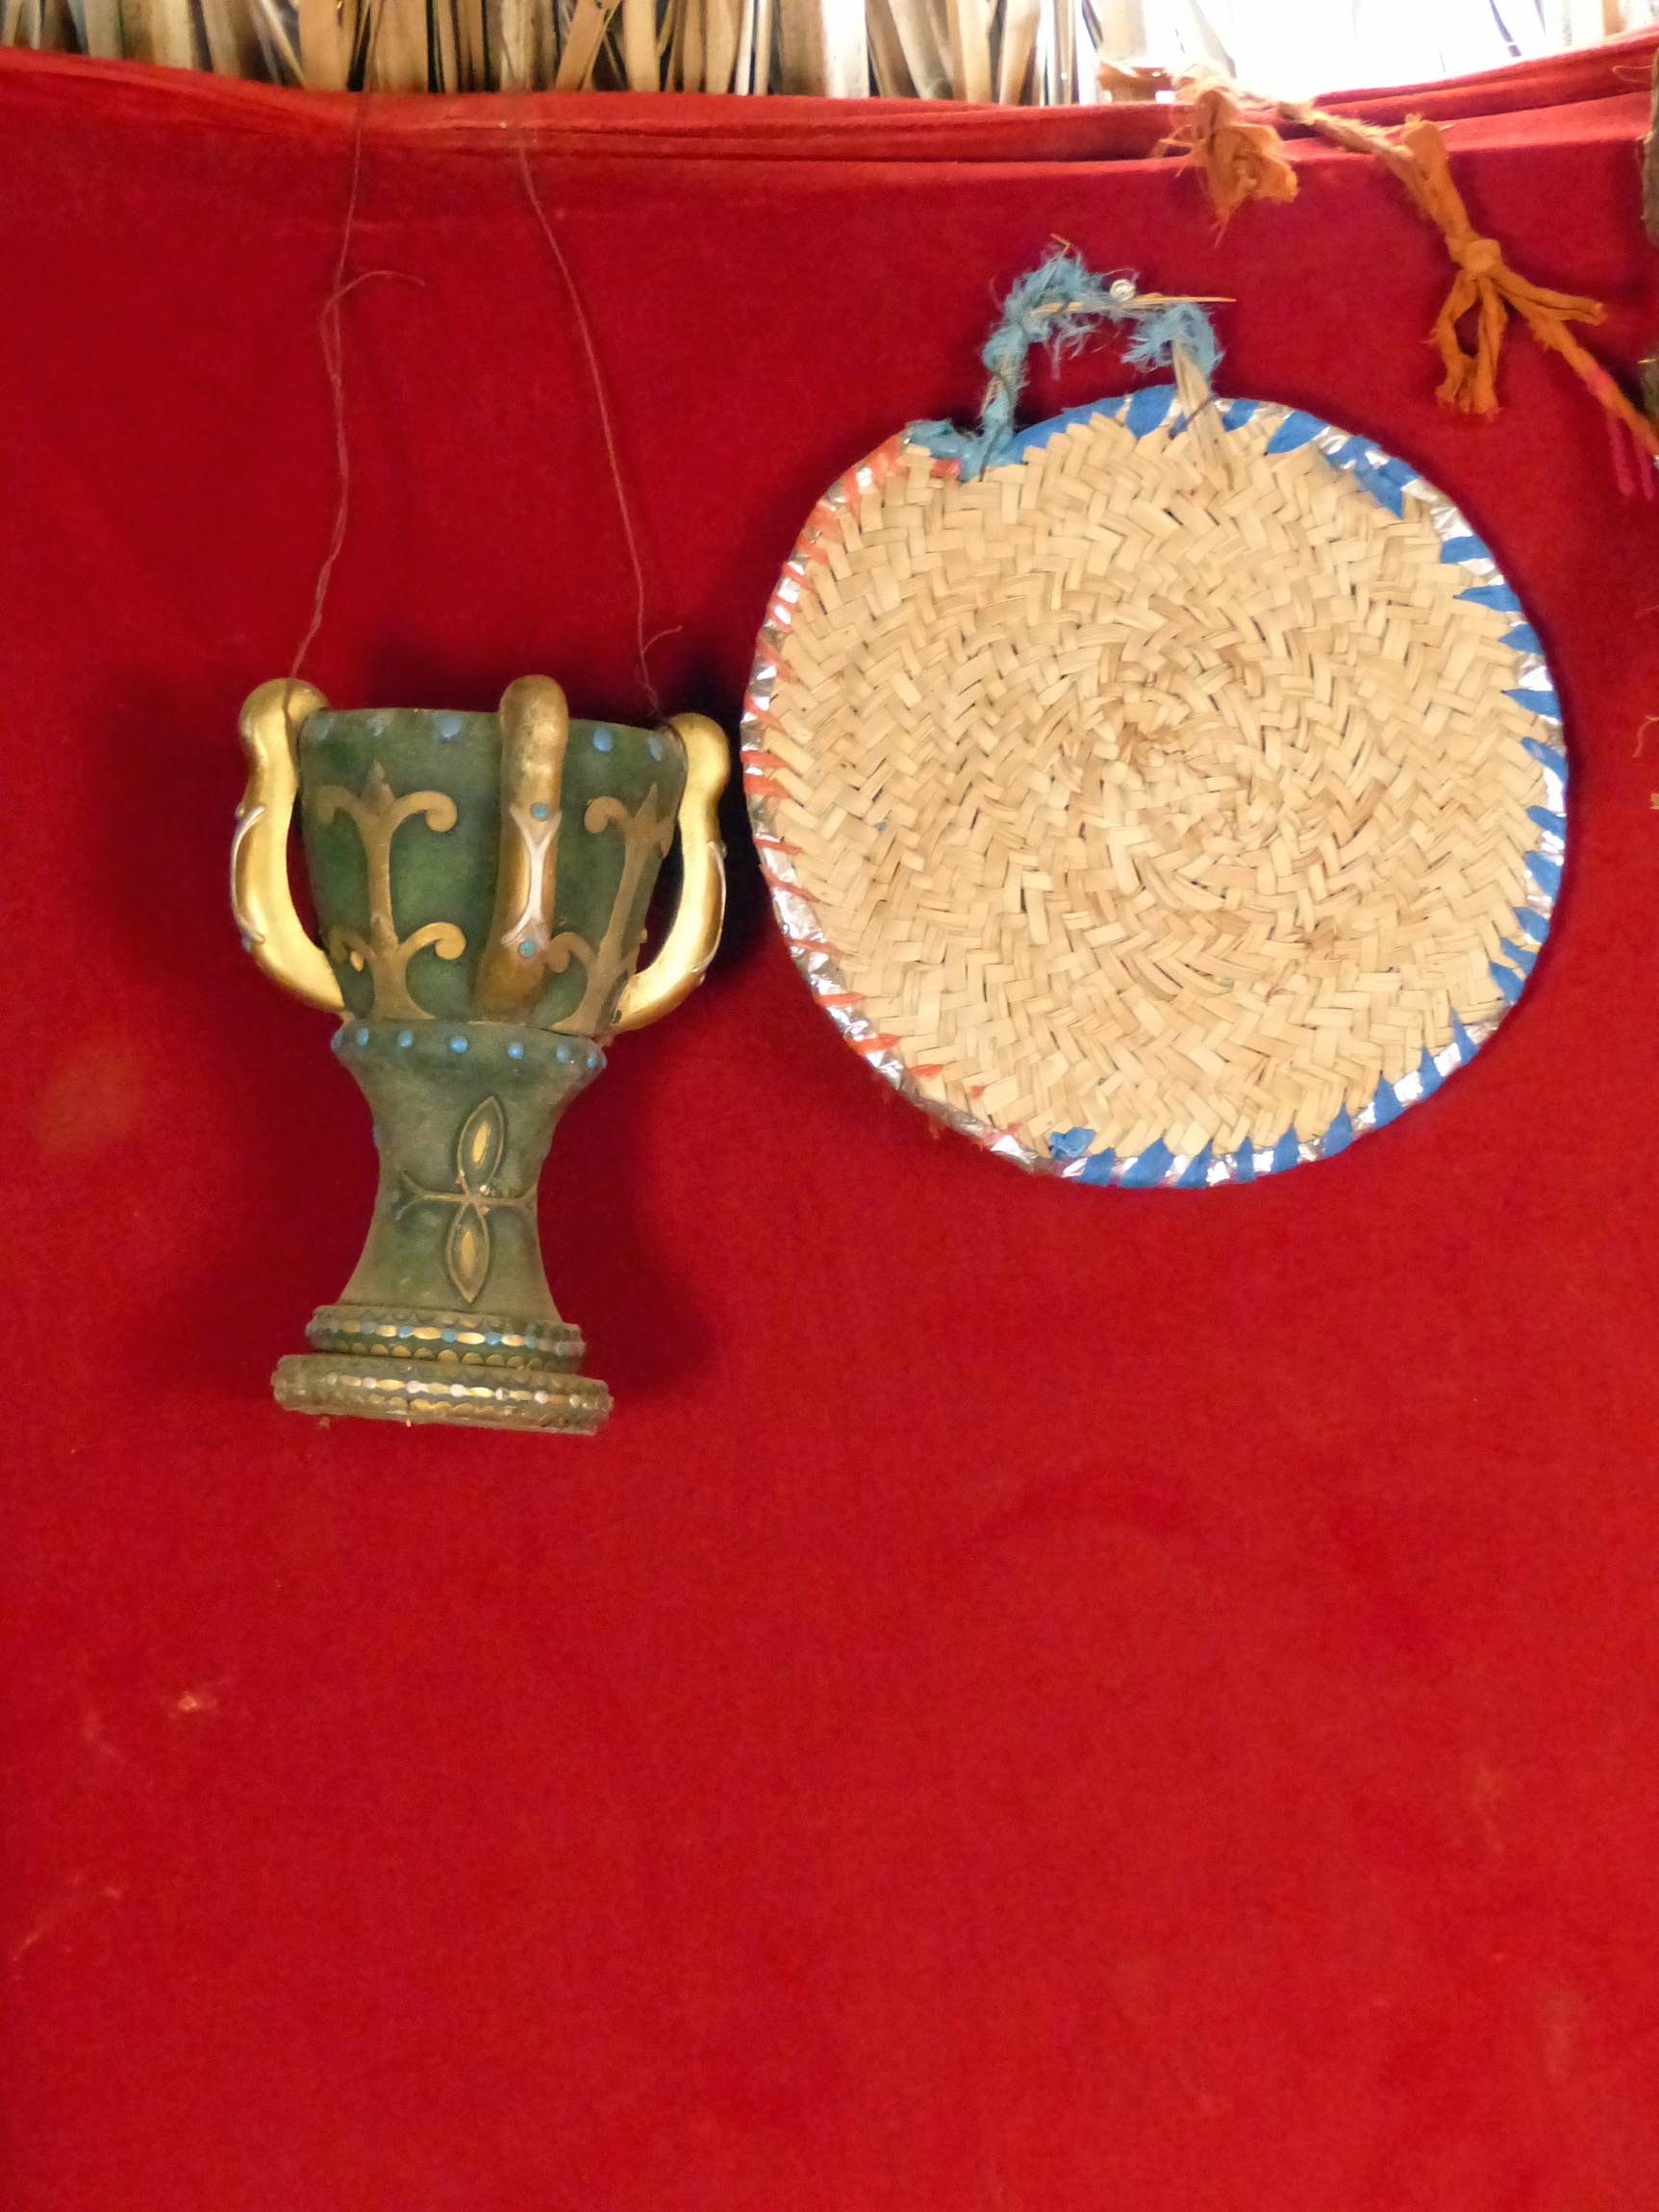 Ornate cup and straw mat hanging on red background